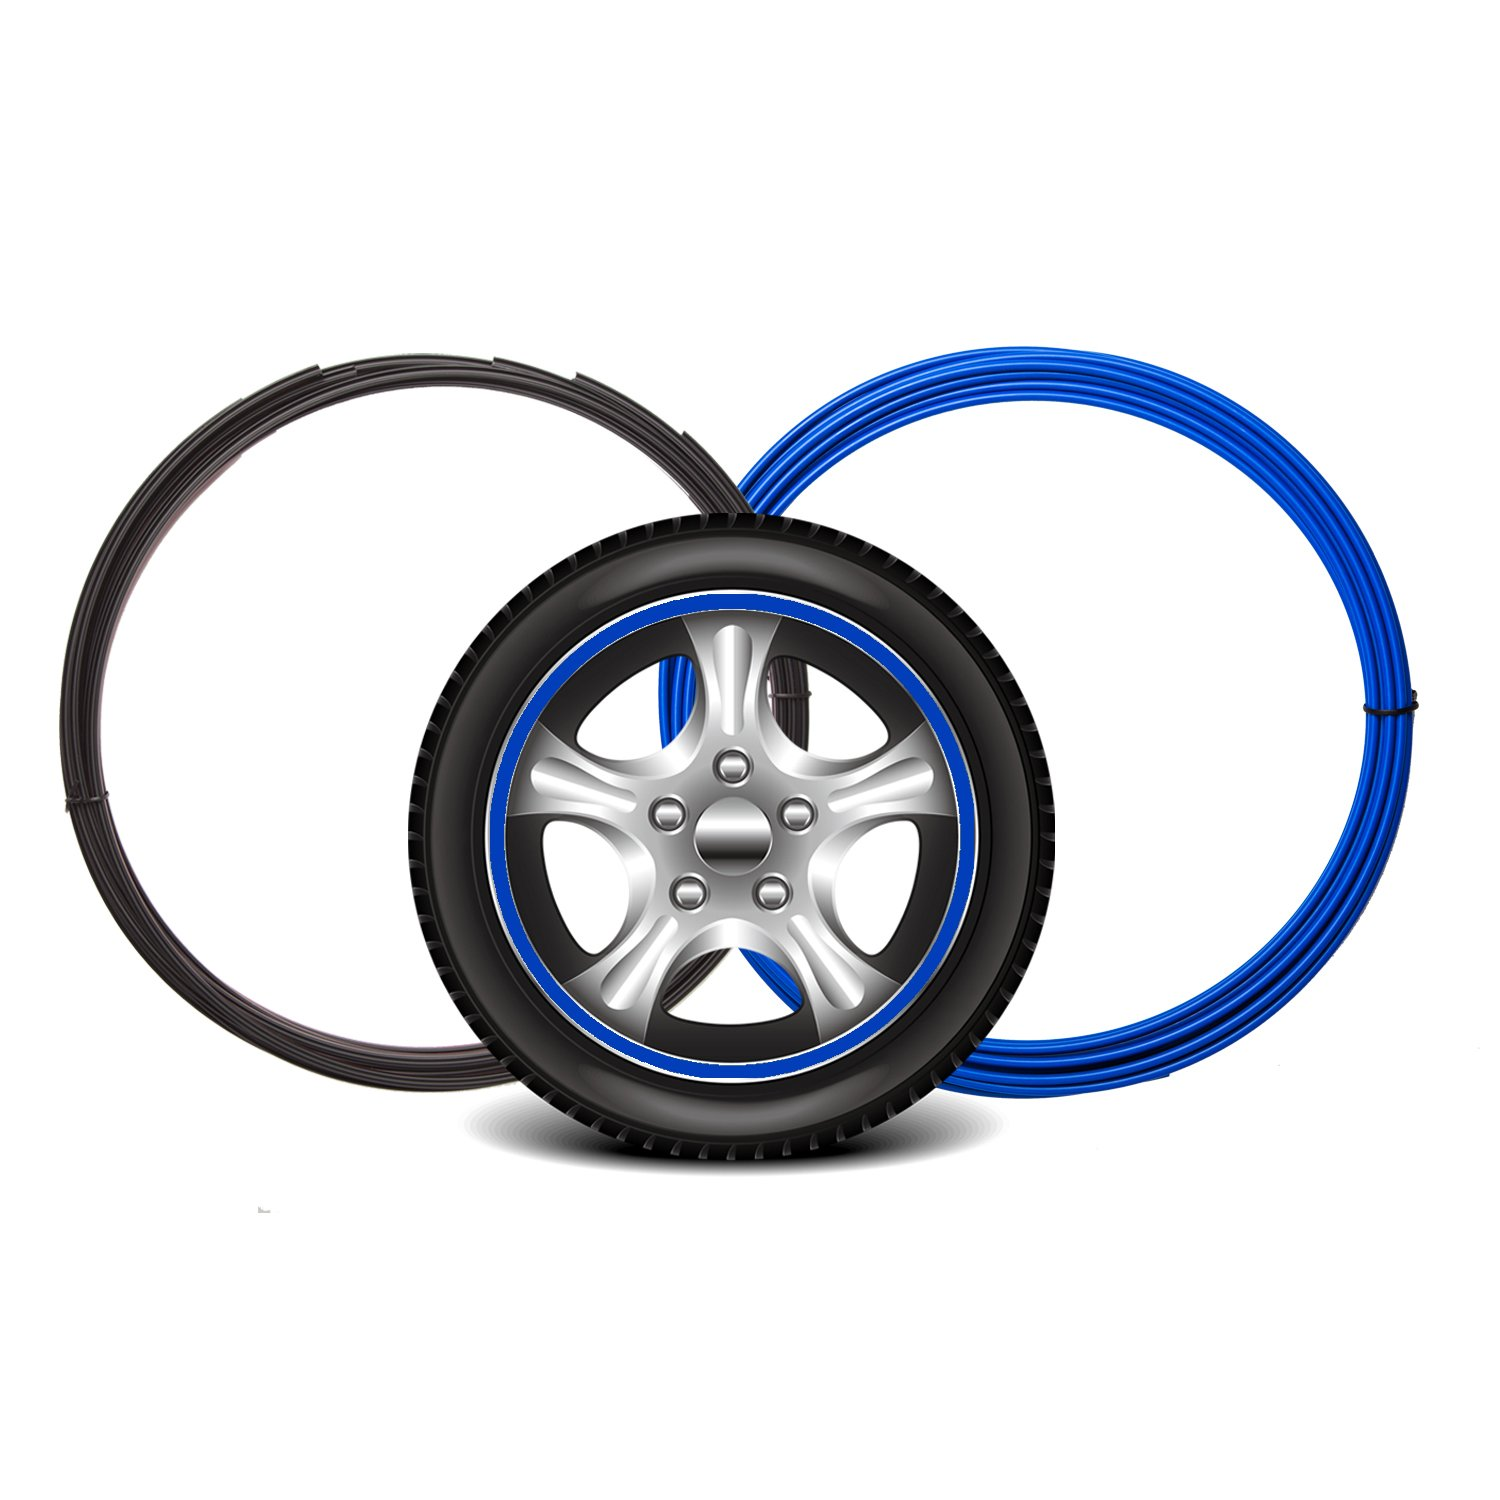 Maidian Wheel Hub Decorative Protection Ring Wheel Hub Stripe Automobile Decoration Scratch Prevention (2M/Item×4piece 8M by Maidian